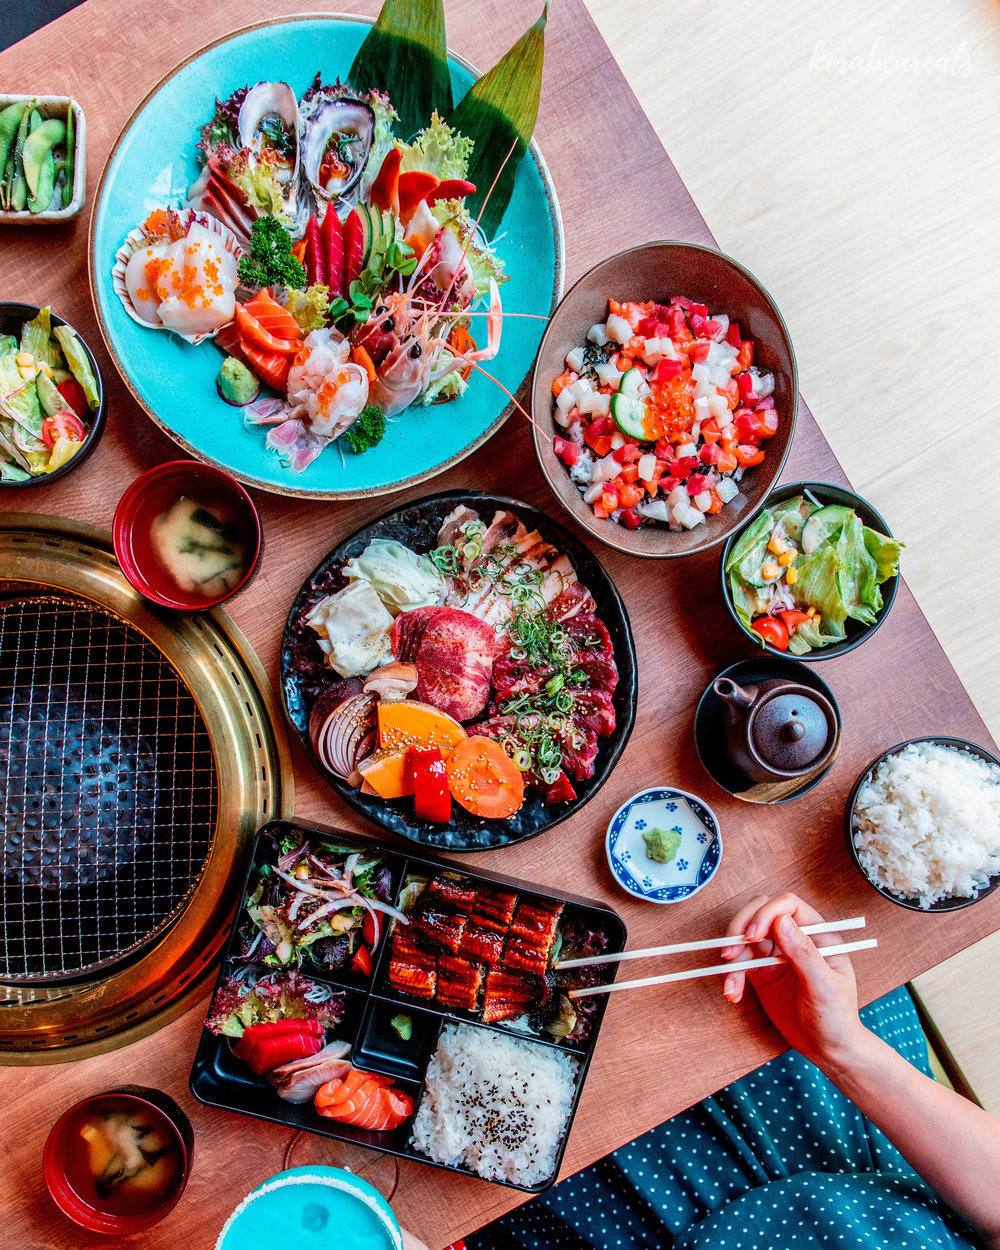 Hero Flatlay at Touka Restaurant, showcases bright and beautiful dishes in an elegant BBQ setting on clean Japanese wood.